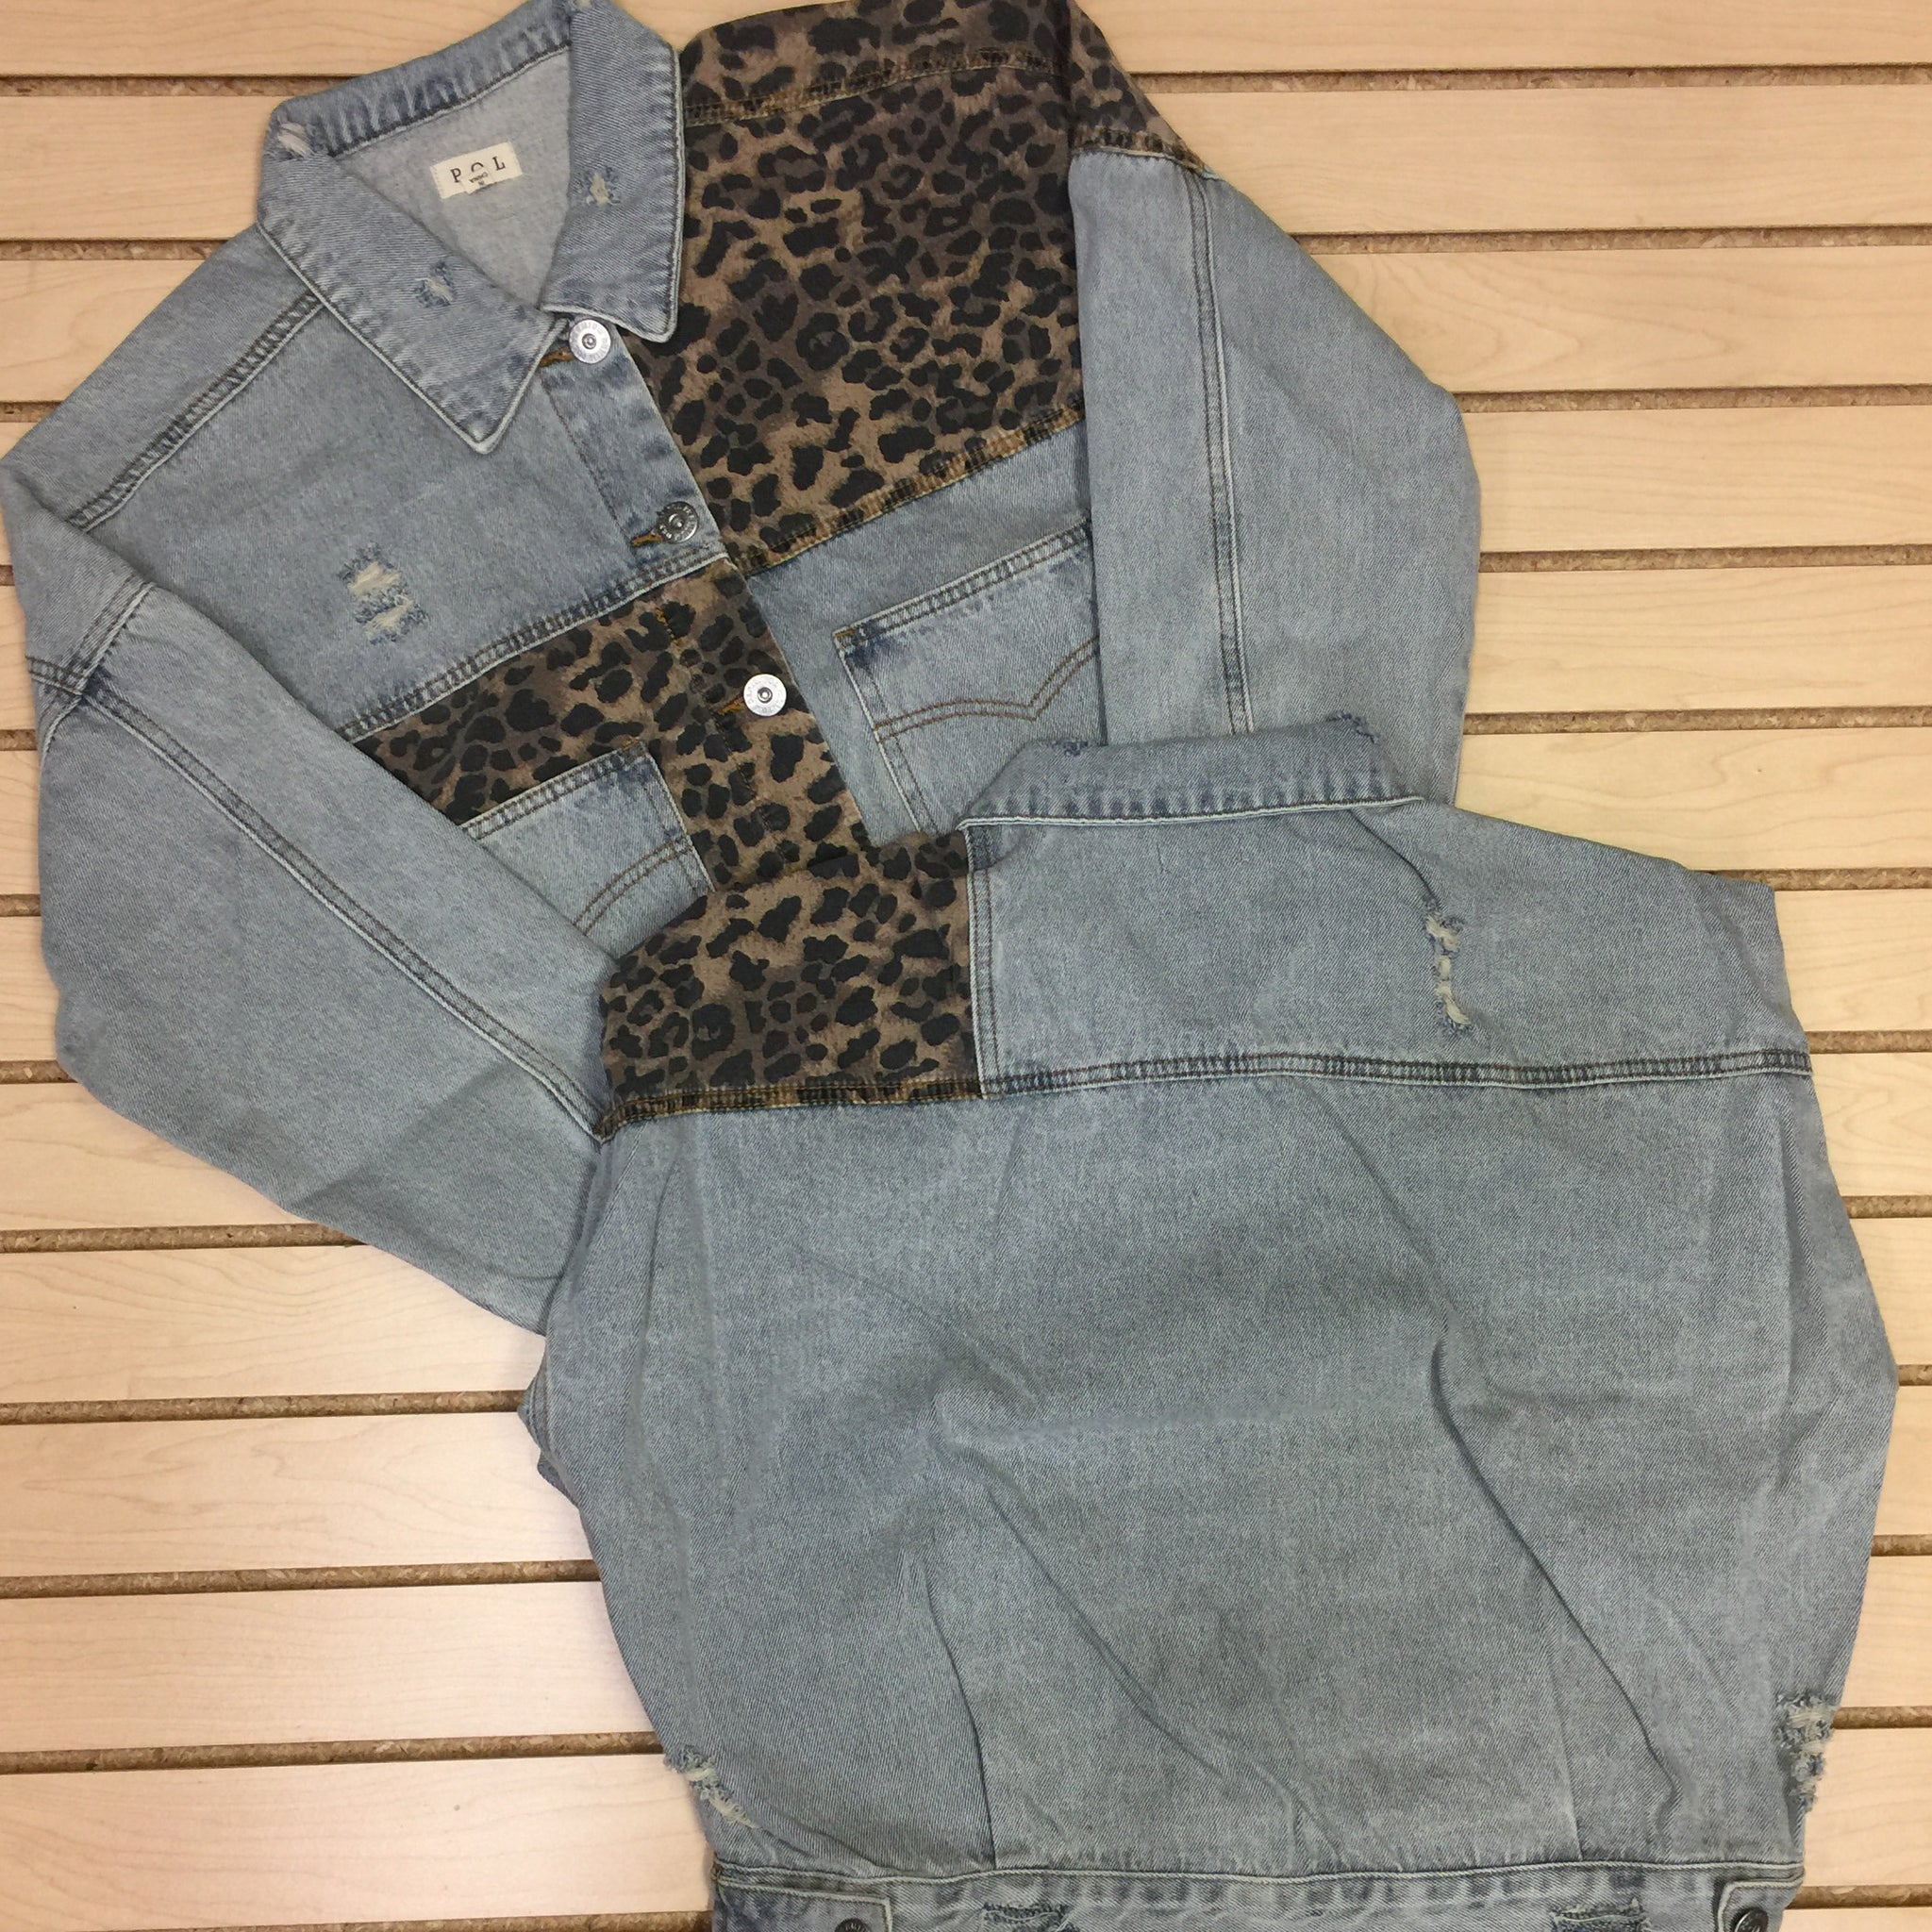 Denim & Leopard Jean Jacket